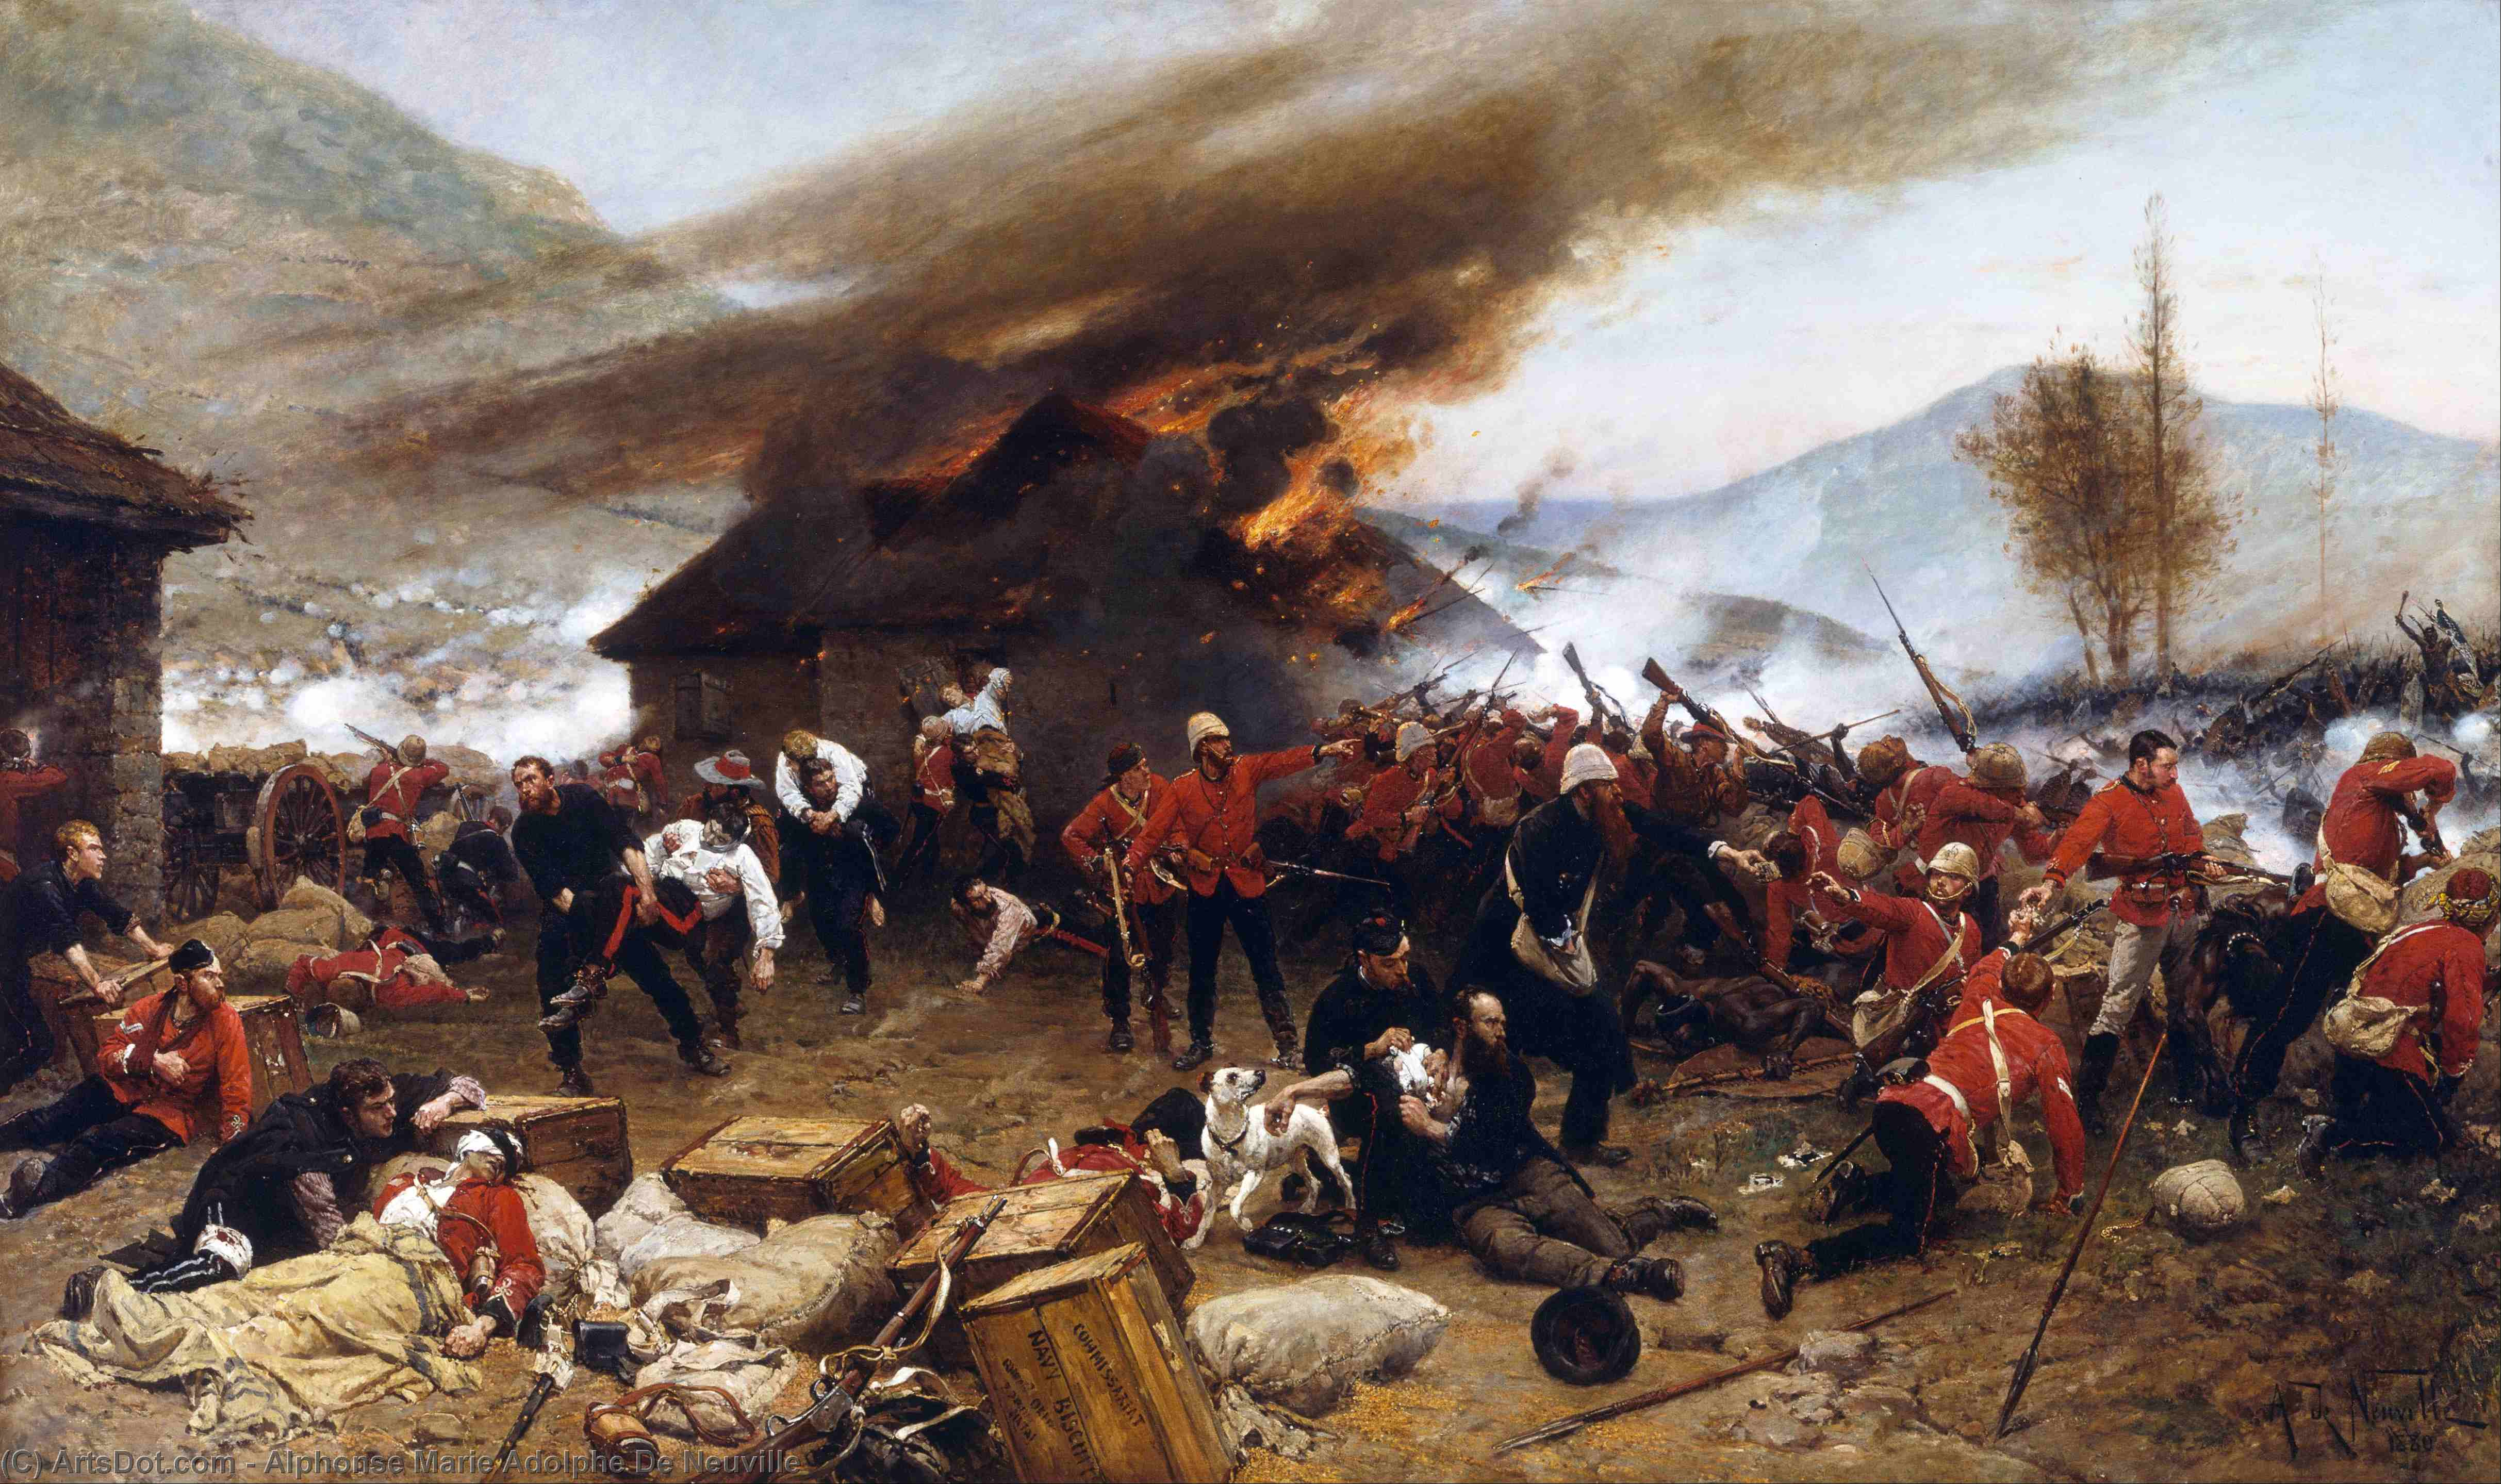 The defence of rorkes drift, Canvas, Oil, Oil On Canvas by Alphonse Marie Adolphe De Neuville (1835-1885, France)